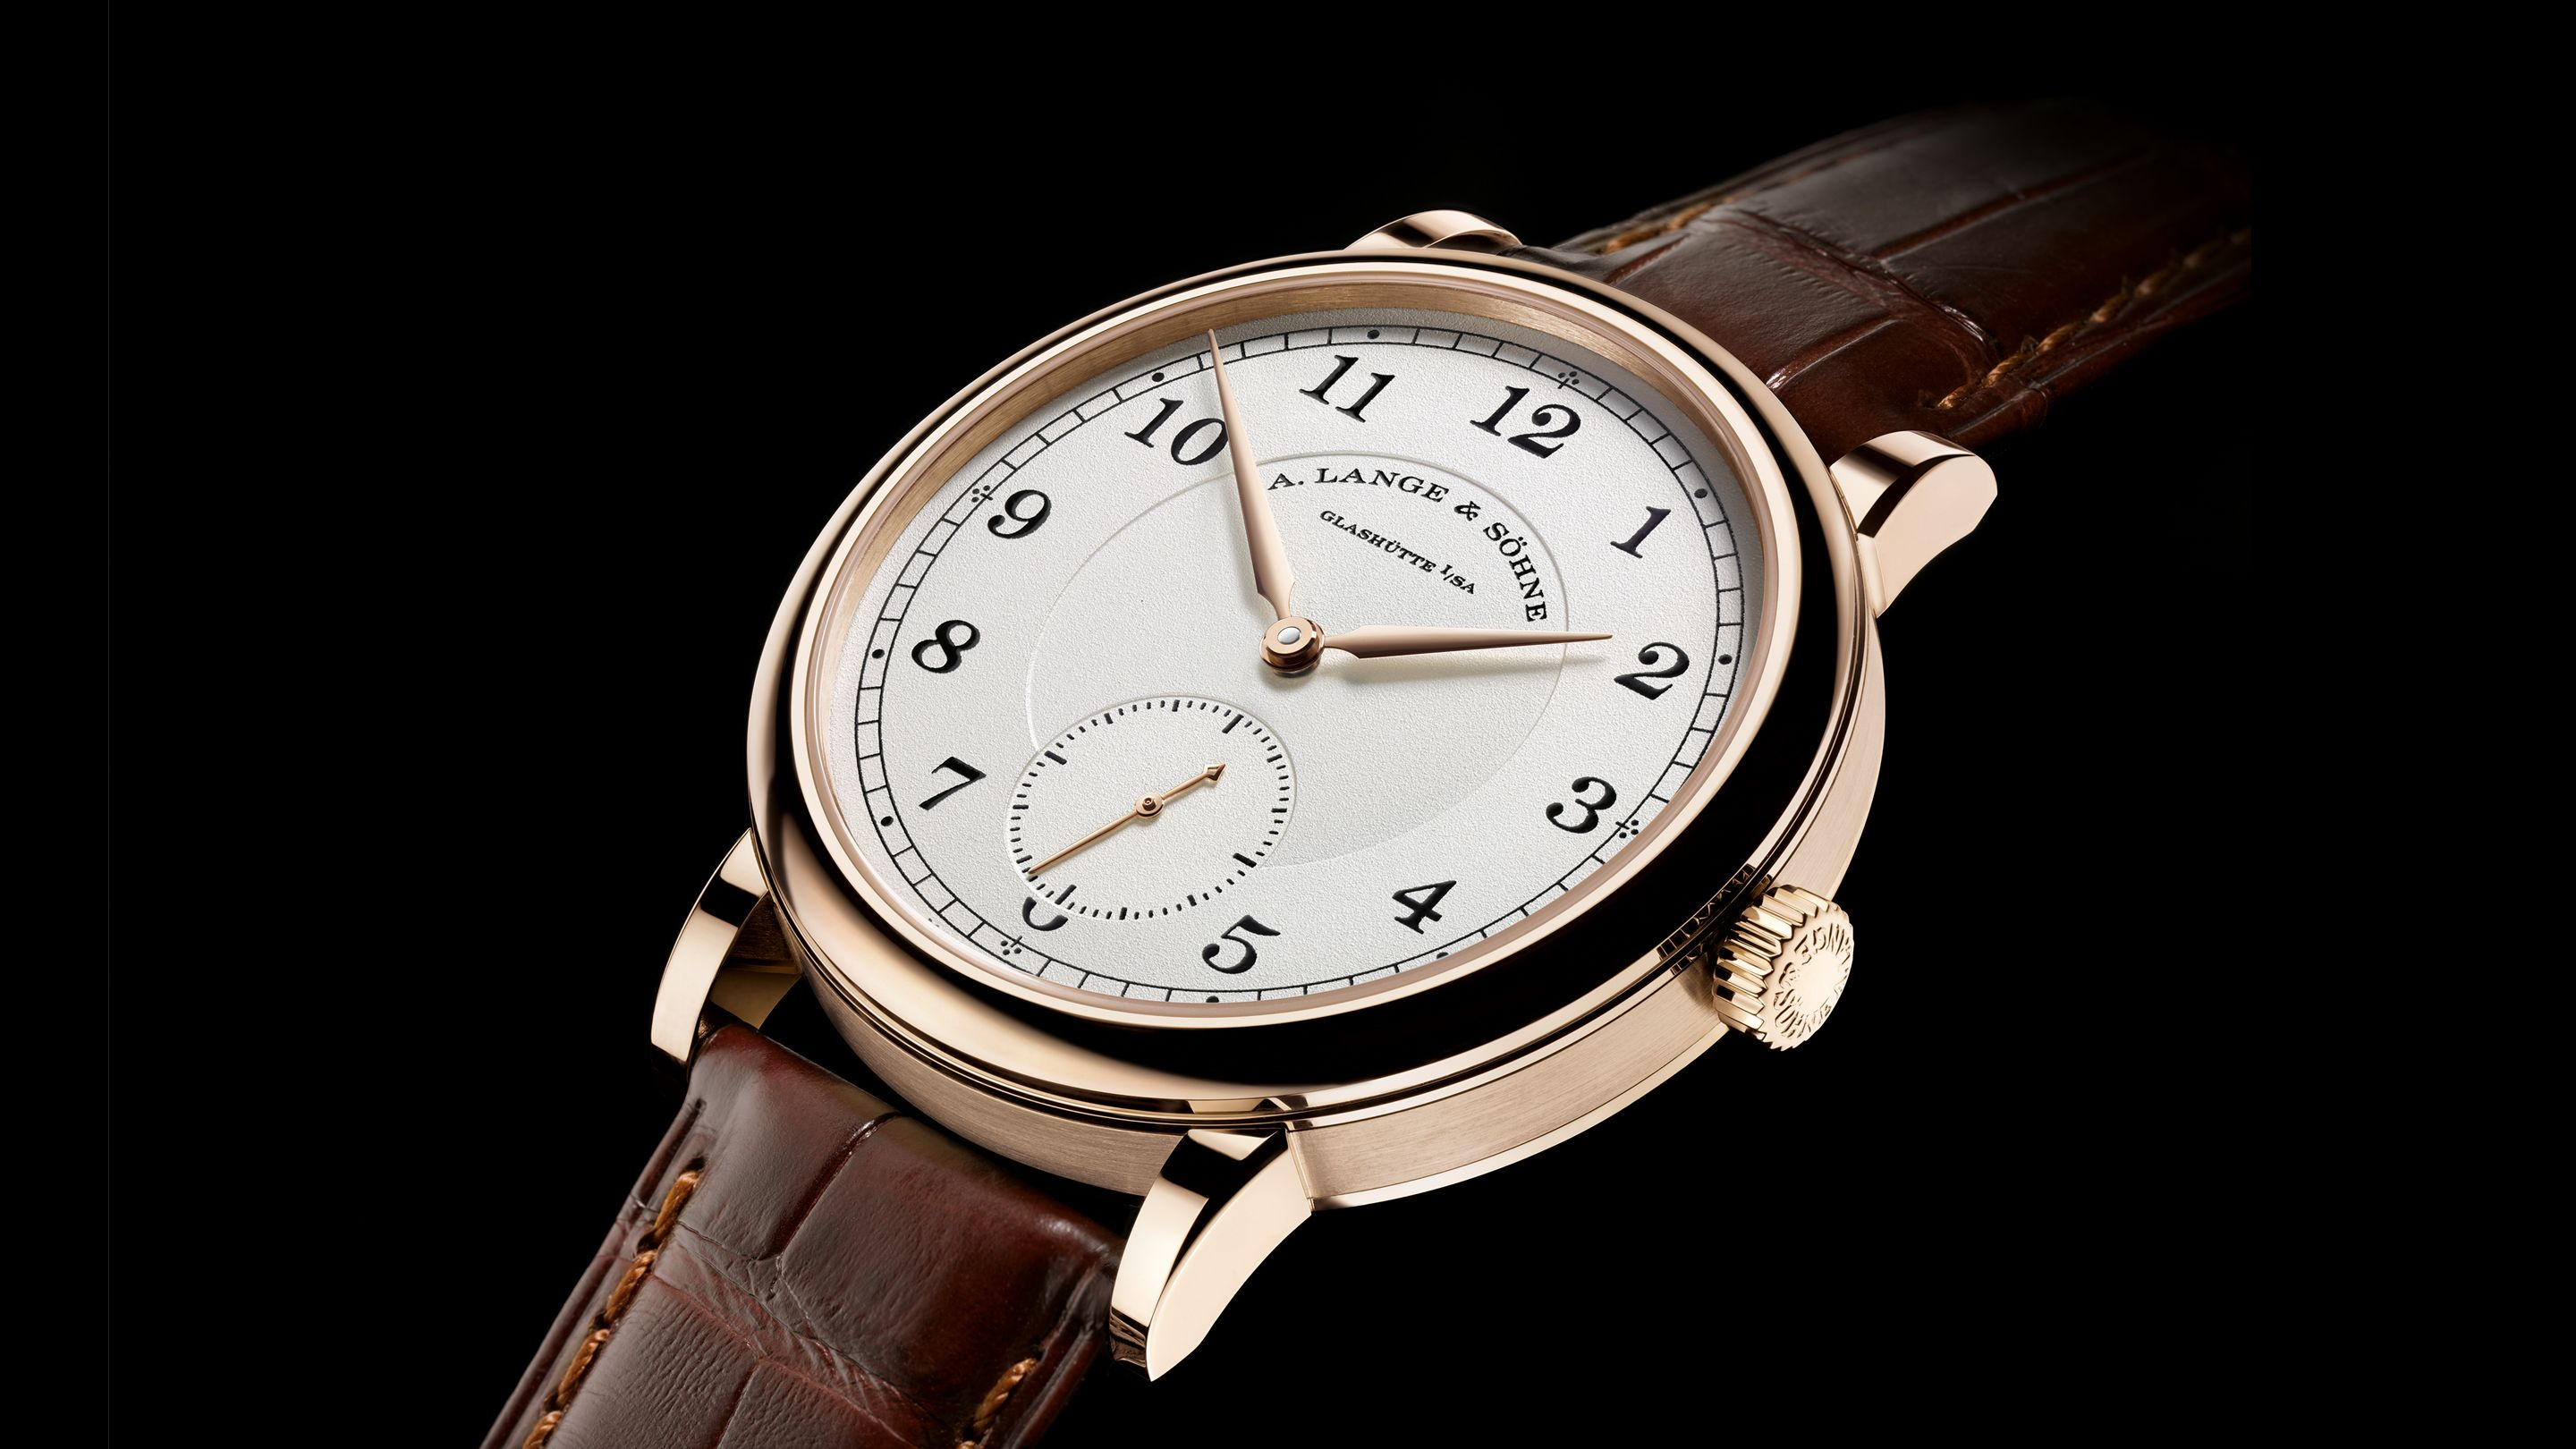 Introducing The A Lange Sohne 1815 Anniversary Of F A Lange In Honey Gold